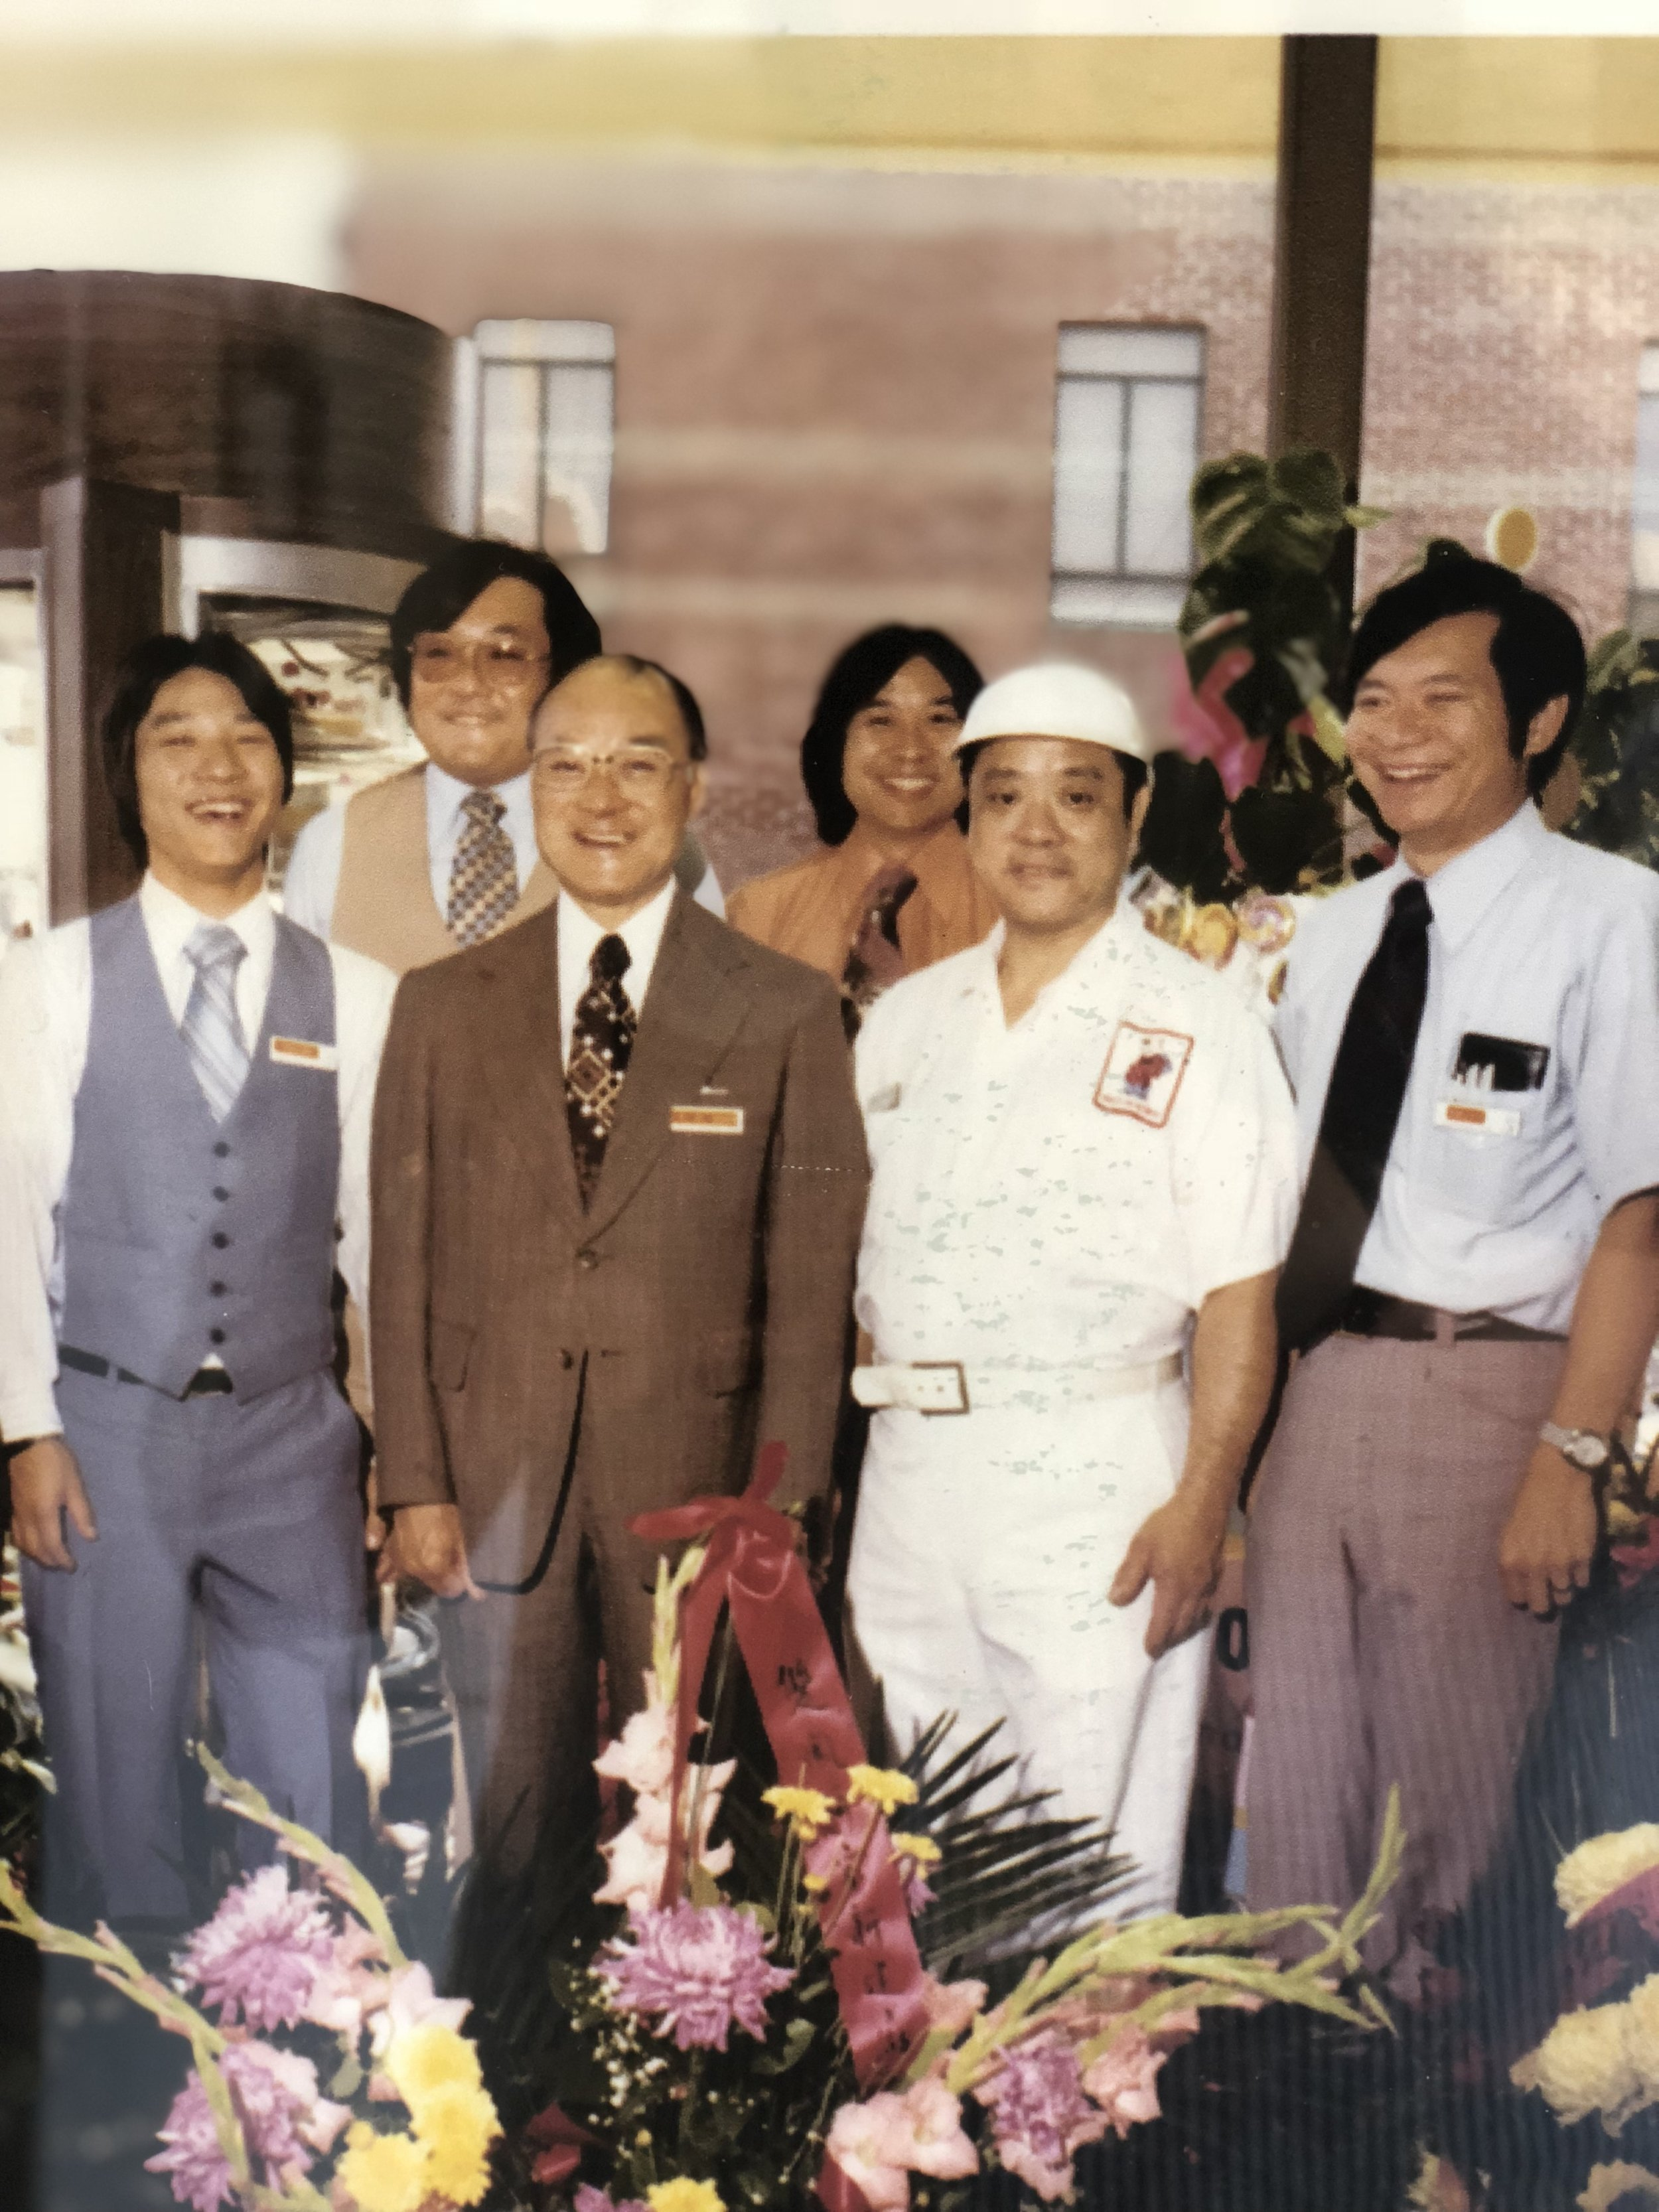 Featured from left to right: Youlen, Kellogg, F.C. Ken, Lun & Kelly Chan